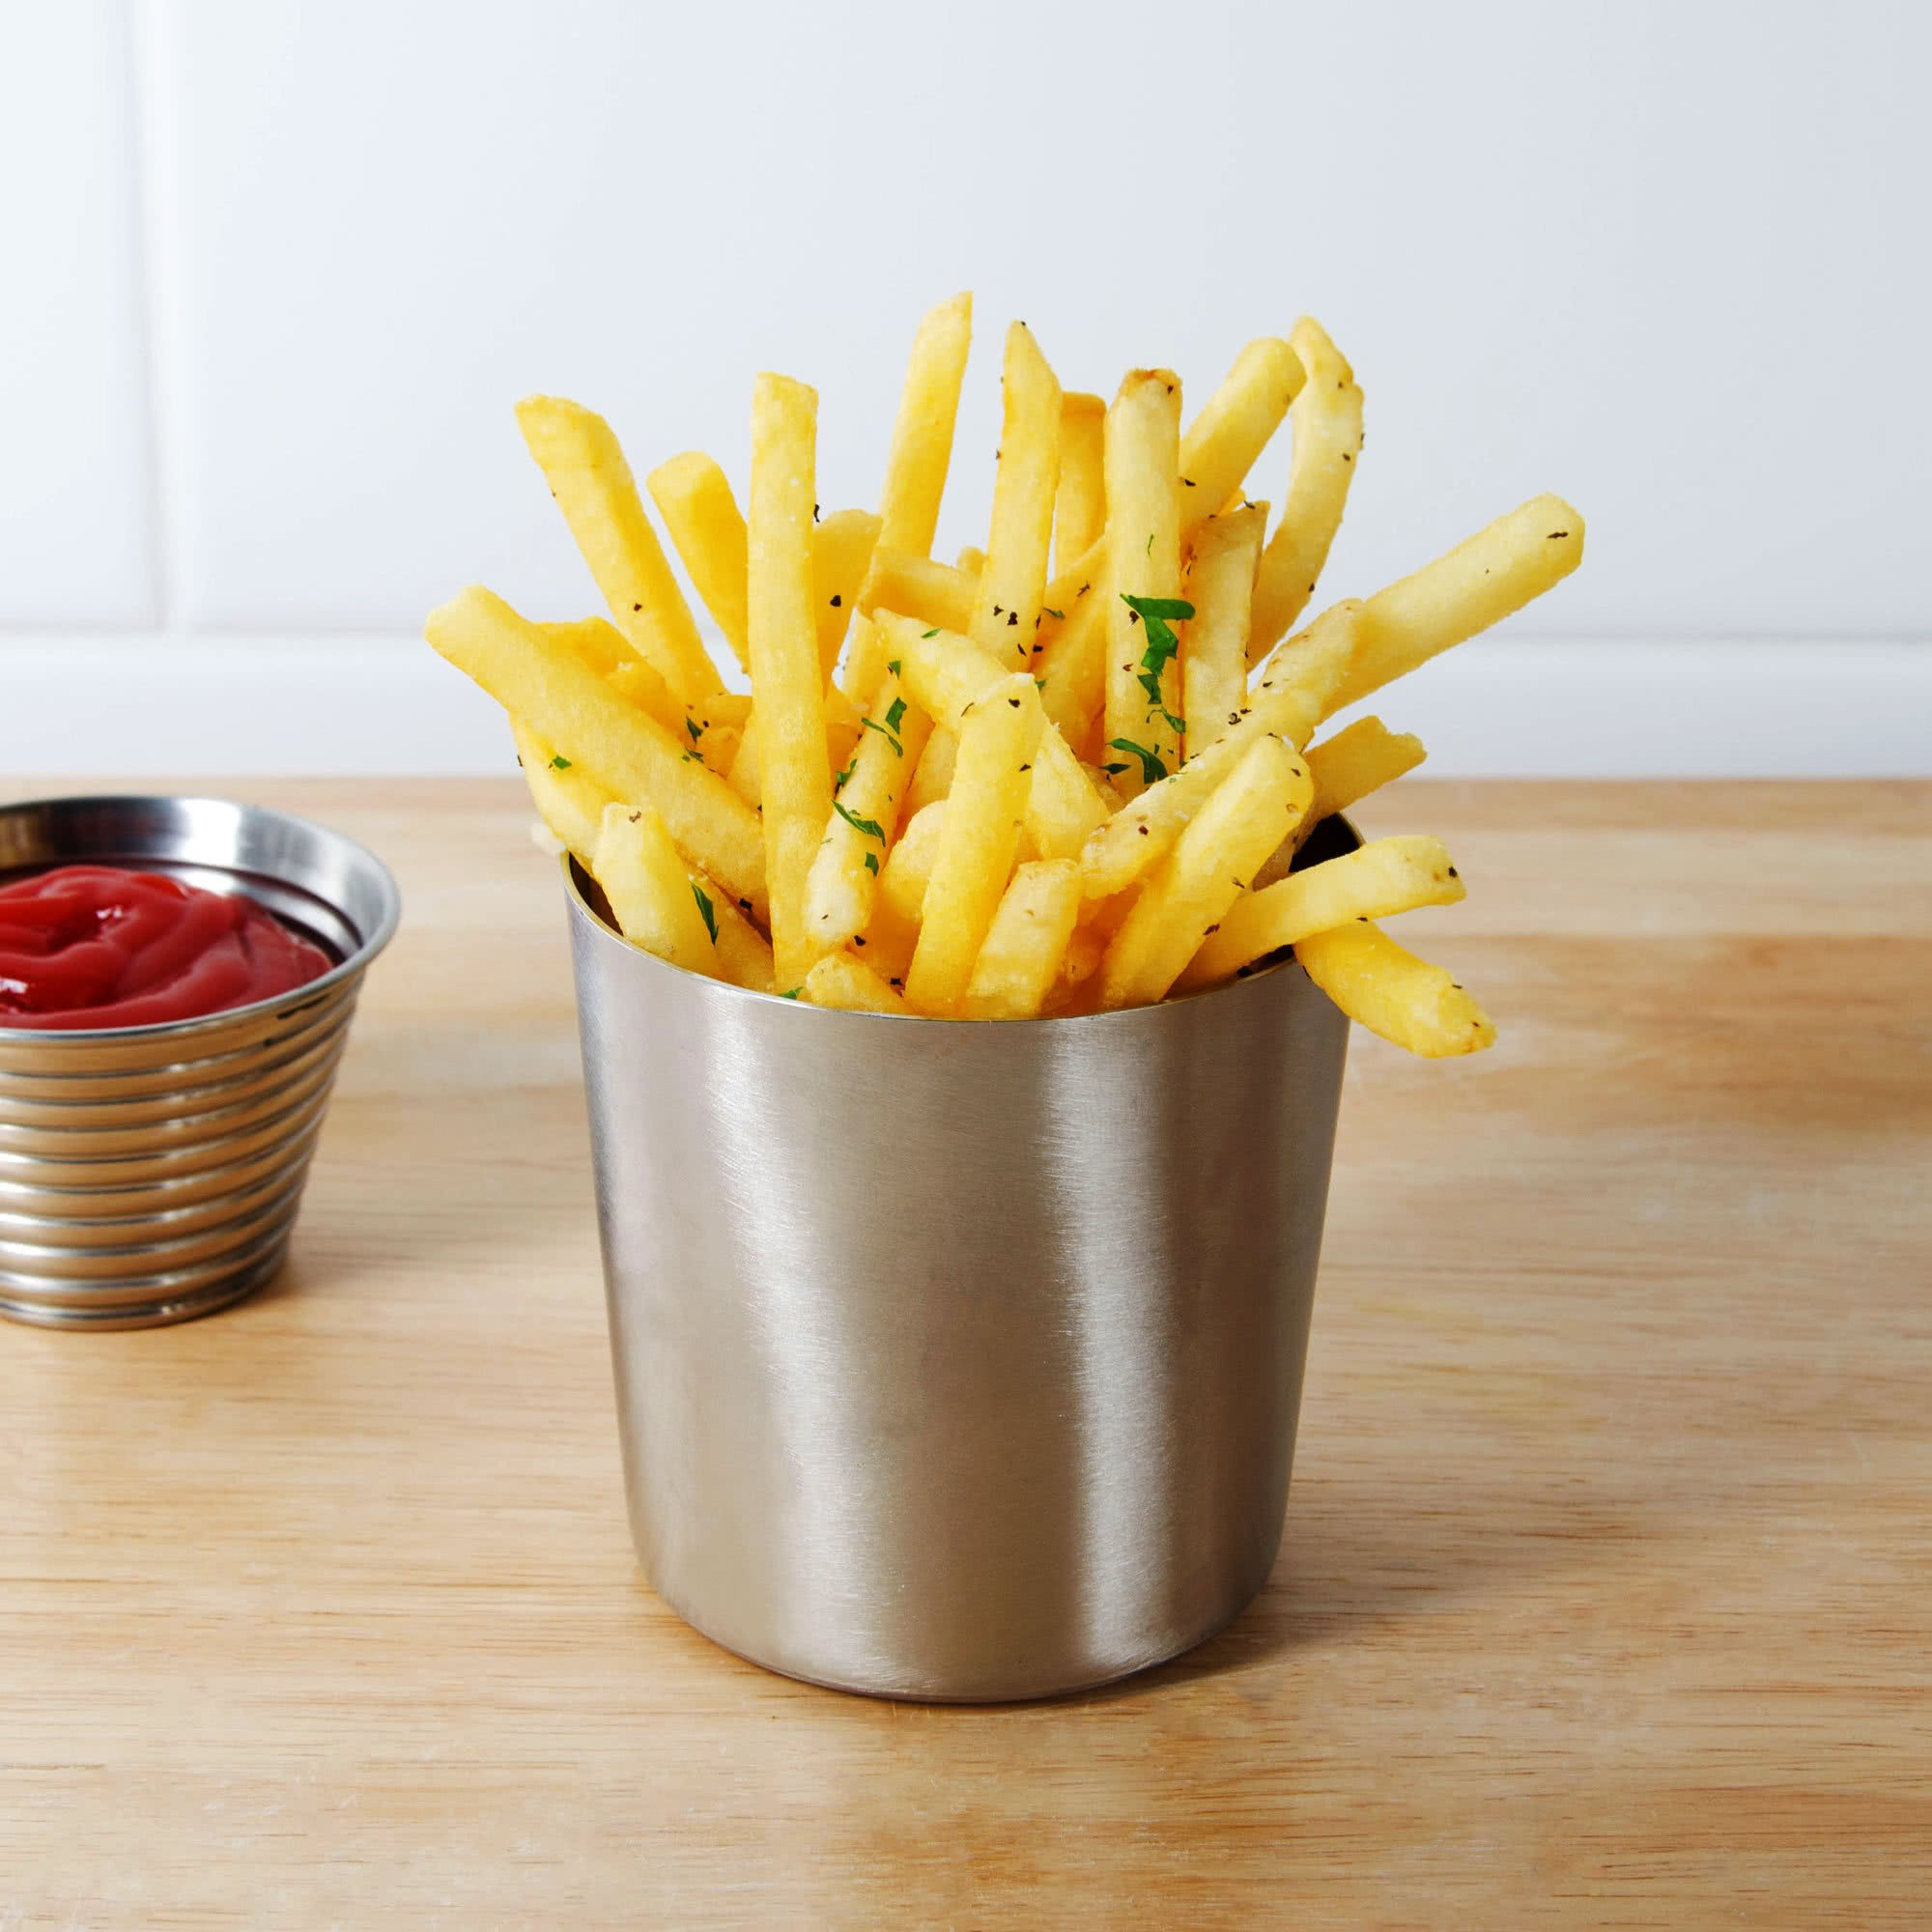 Table Top King FFC337 3 3/8'' Satin Stainless Steel French Fry Cup